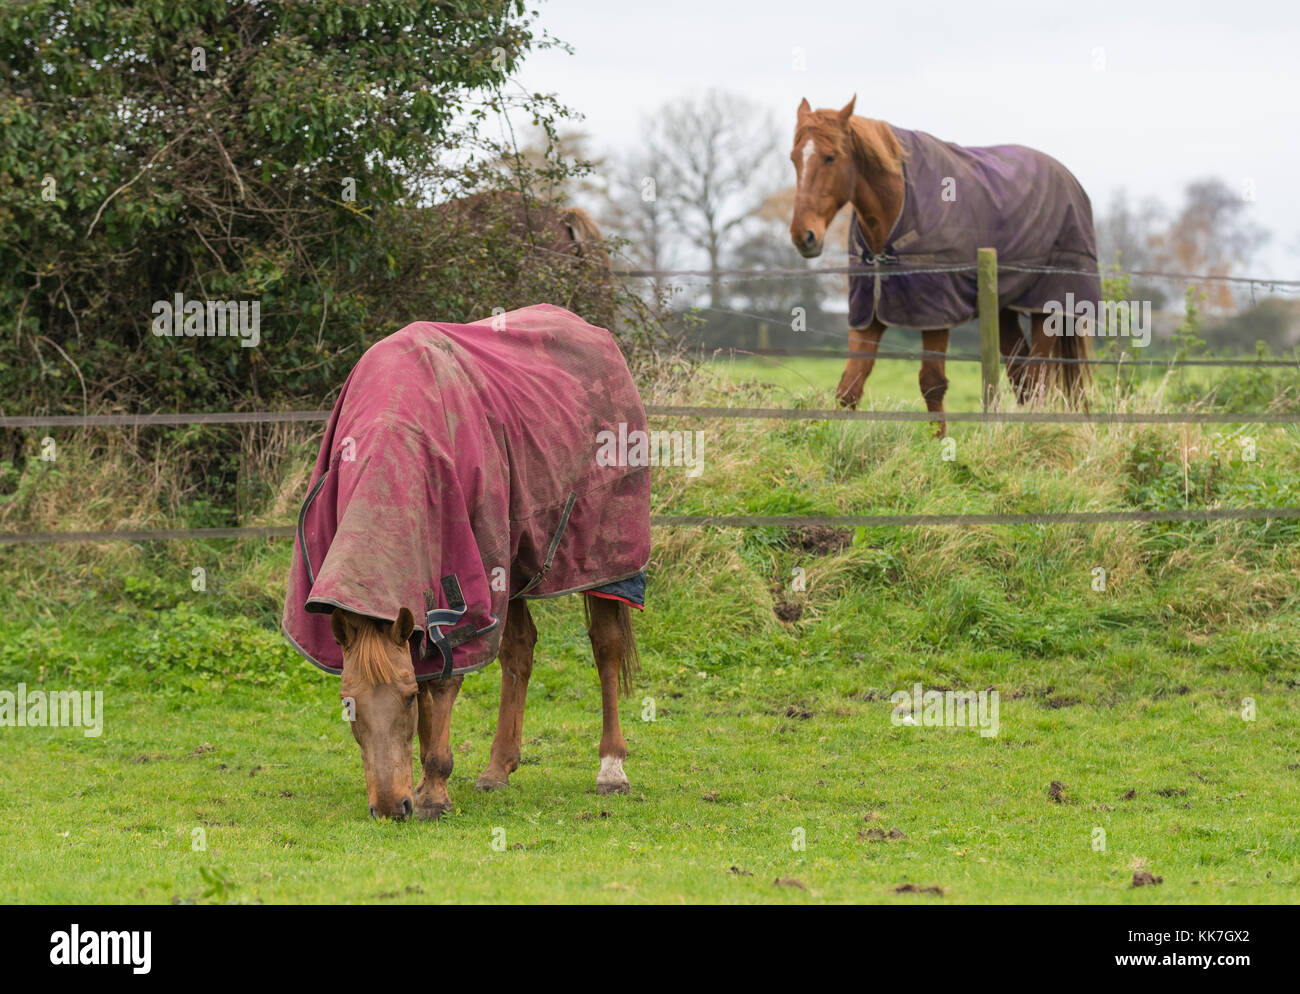 Horses in a field with horse blankets to keep warm in cold Winter weather in the UK. - Stock Image